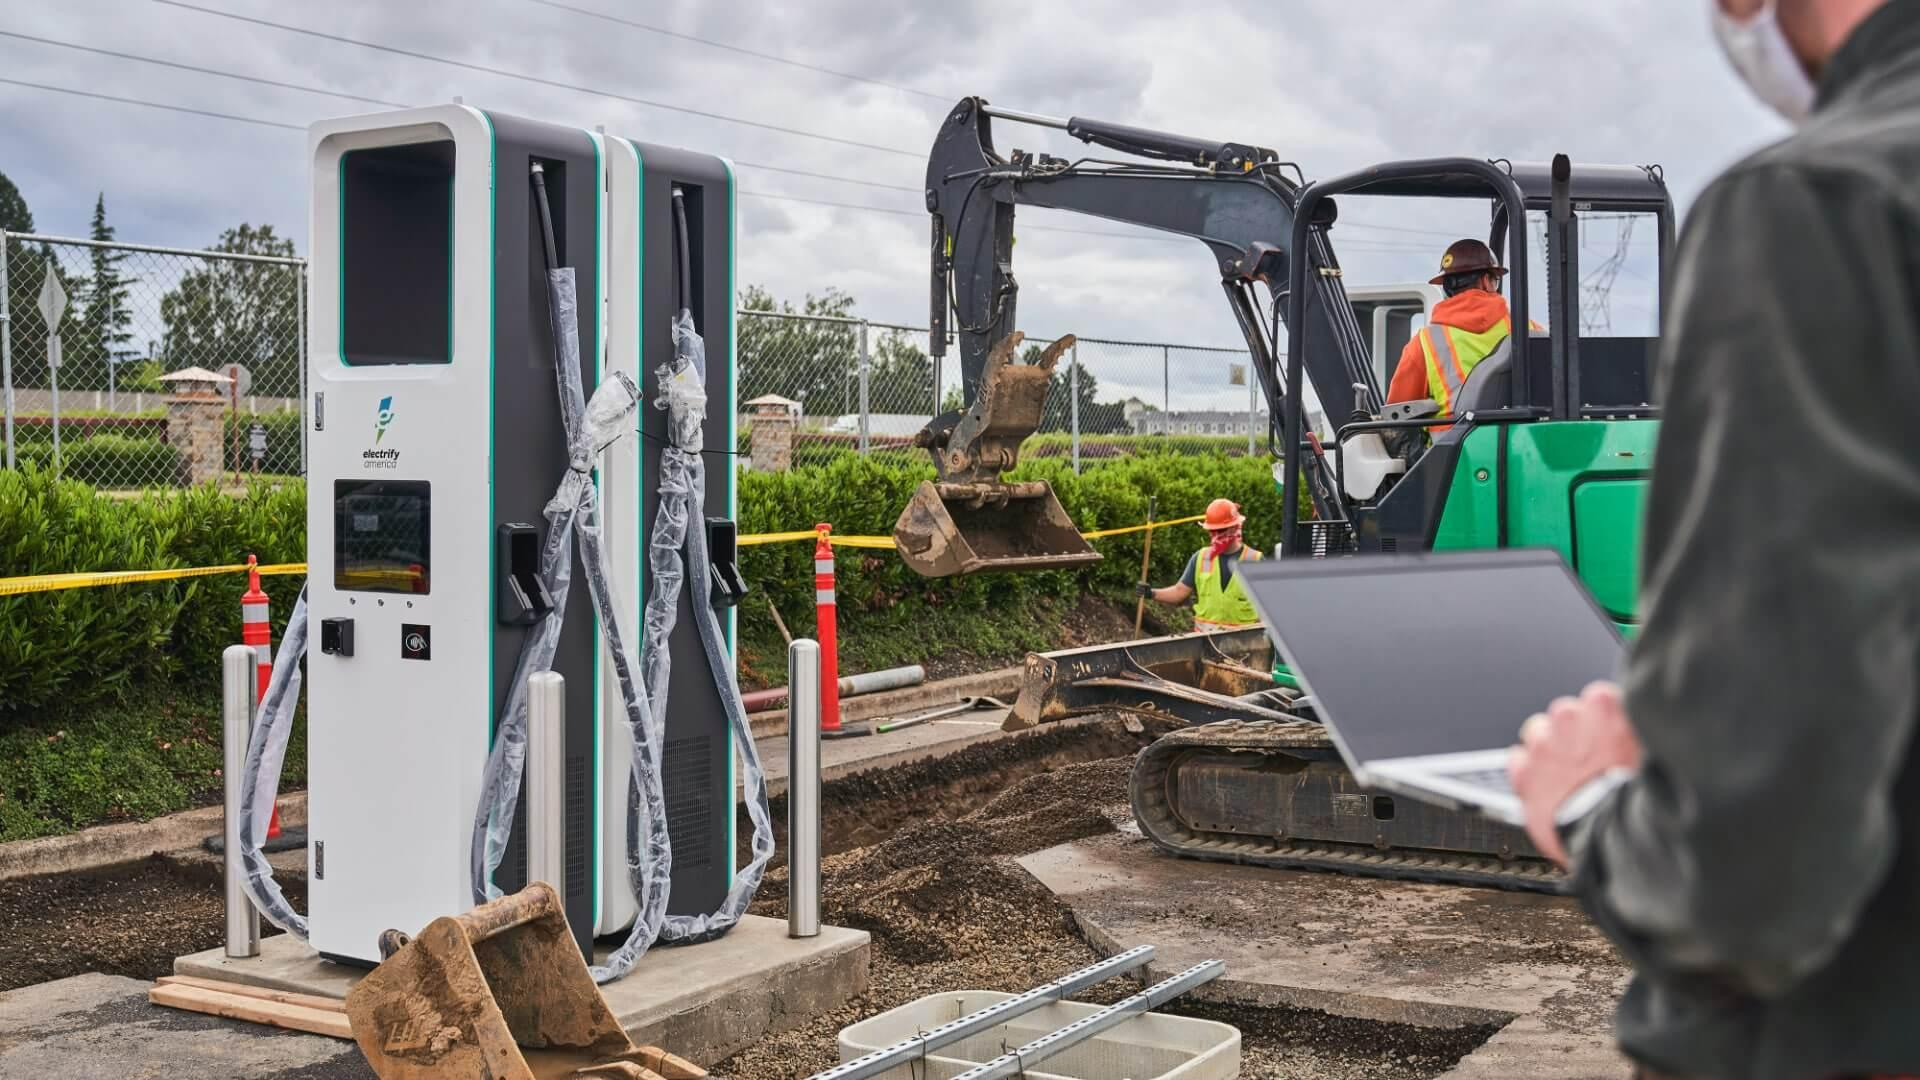 Workers installing electric car chargers with heavy machinery